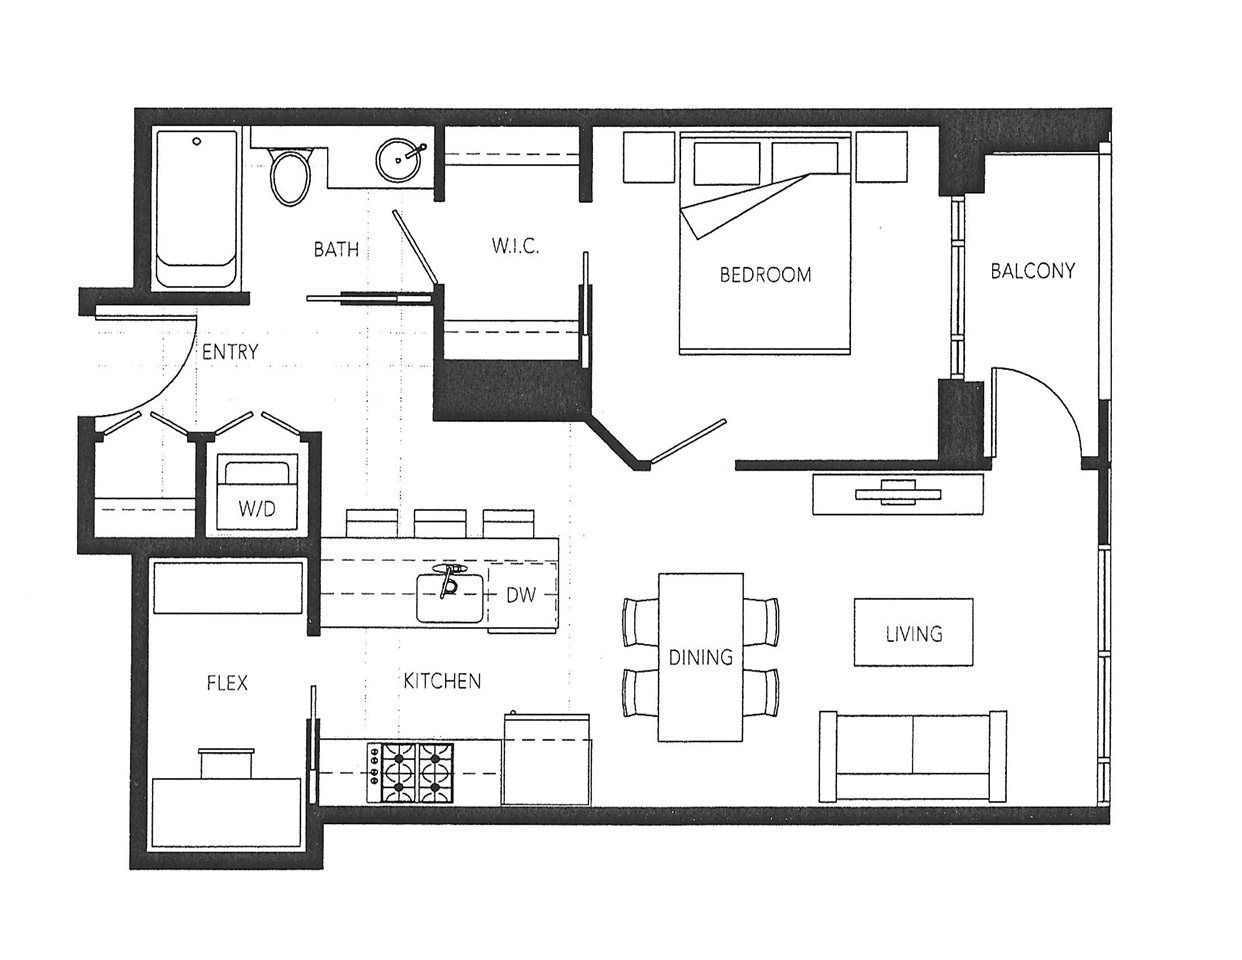 Main Photo: 2002 833 SEYMOUR STREET in Vancouver: Downtown VW Condo for sale (Vancouver West)  : MLS®# R2520174